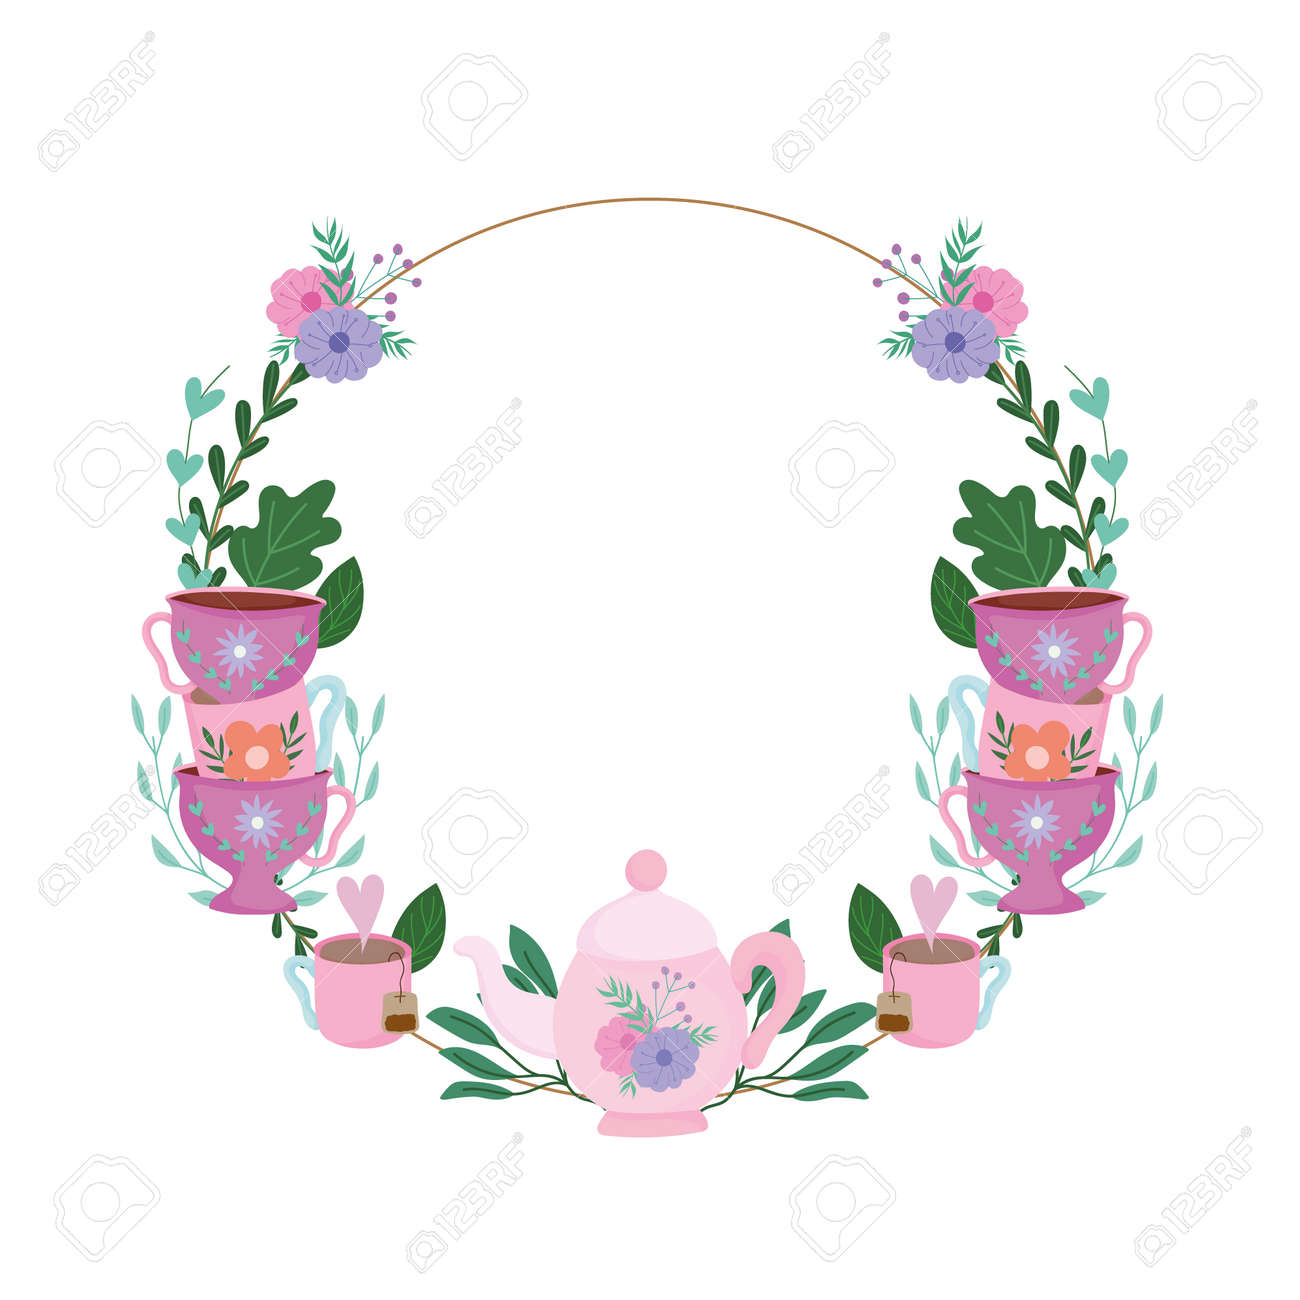 Tea time, floral wreath cups decoration flowers and leaves vector illustration - 162619742